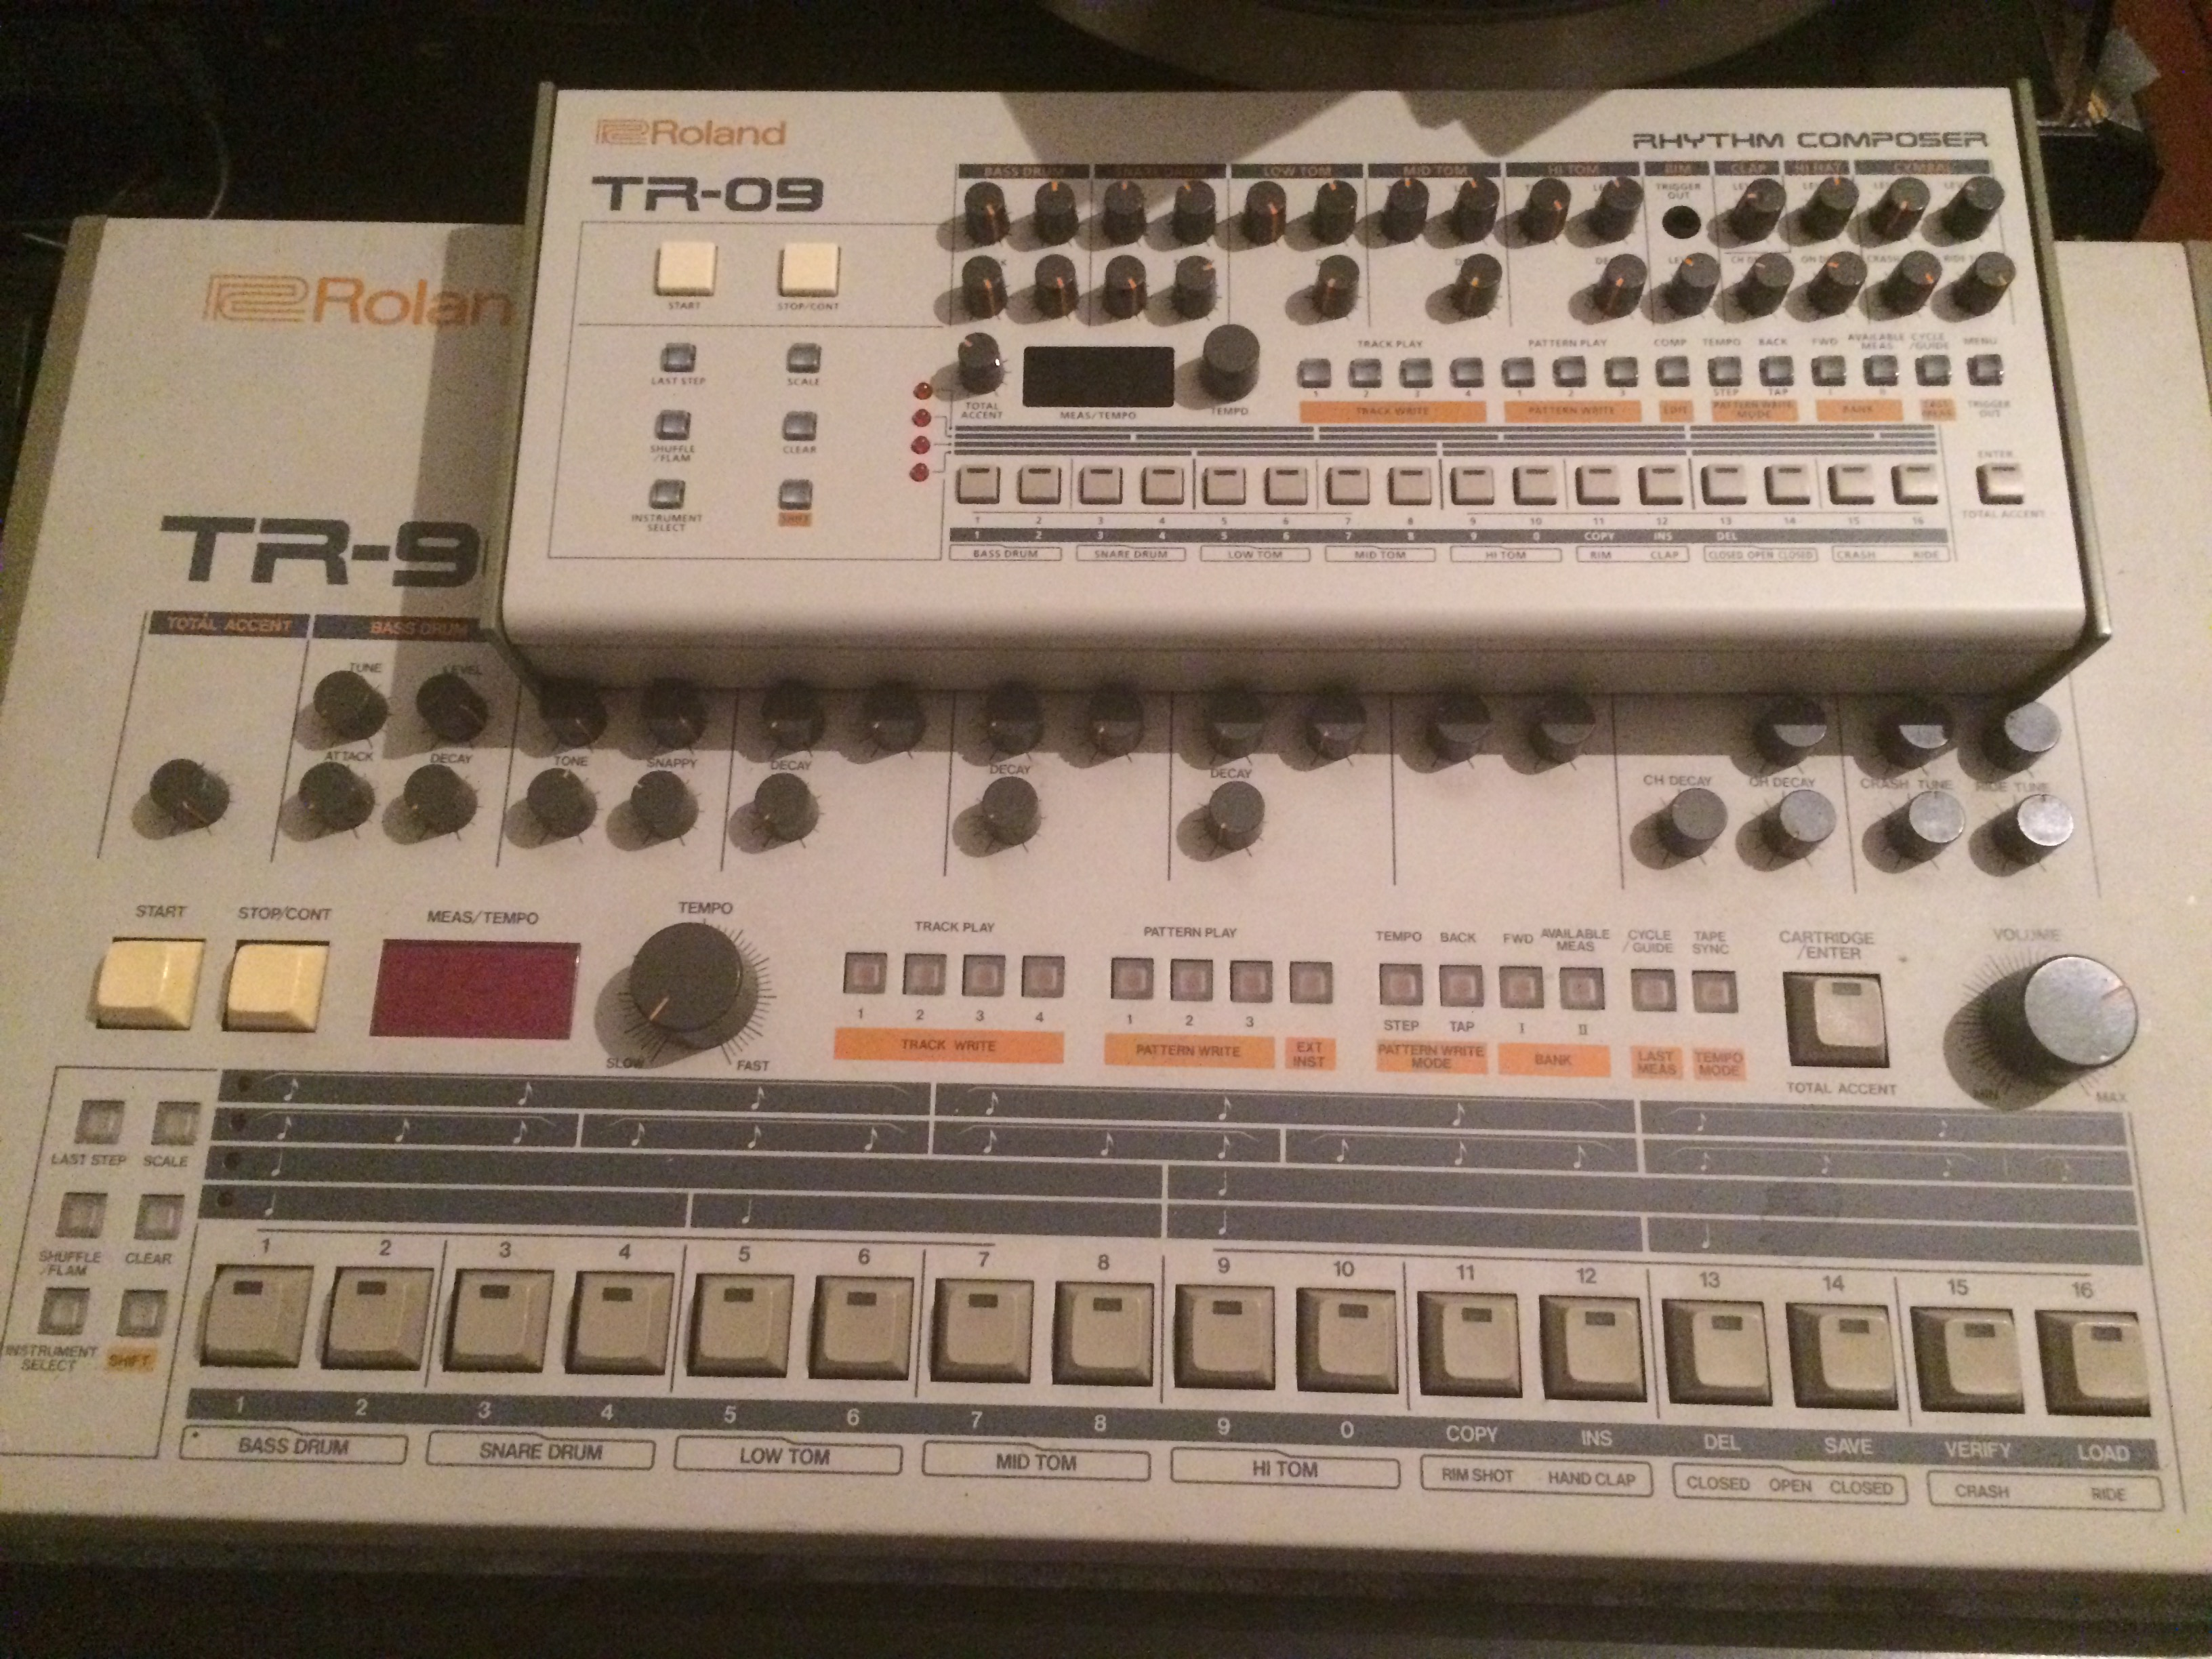 Roland Ju 06 out of production? - Other Gear - Elektronauts